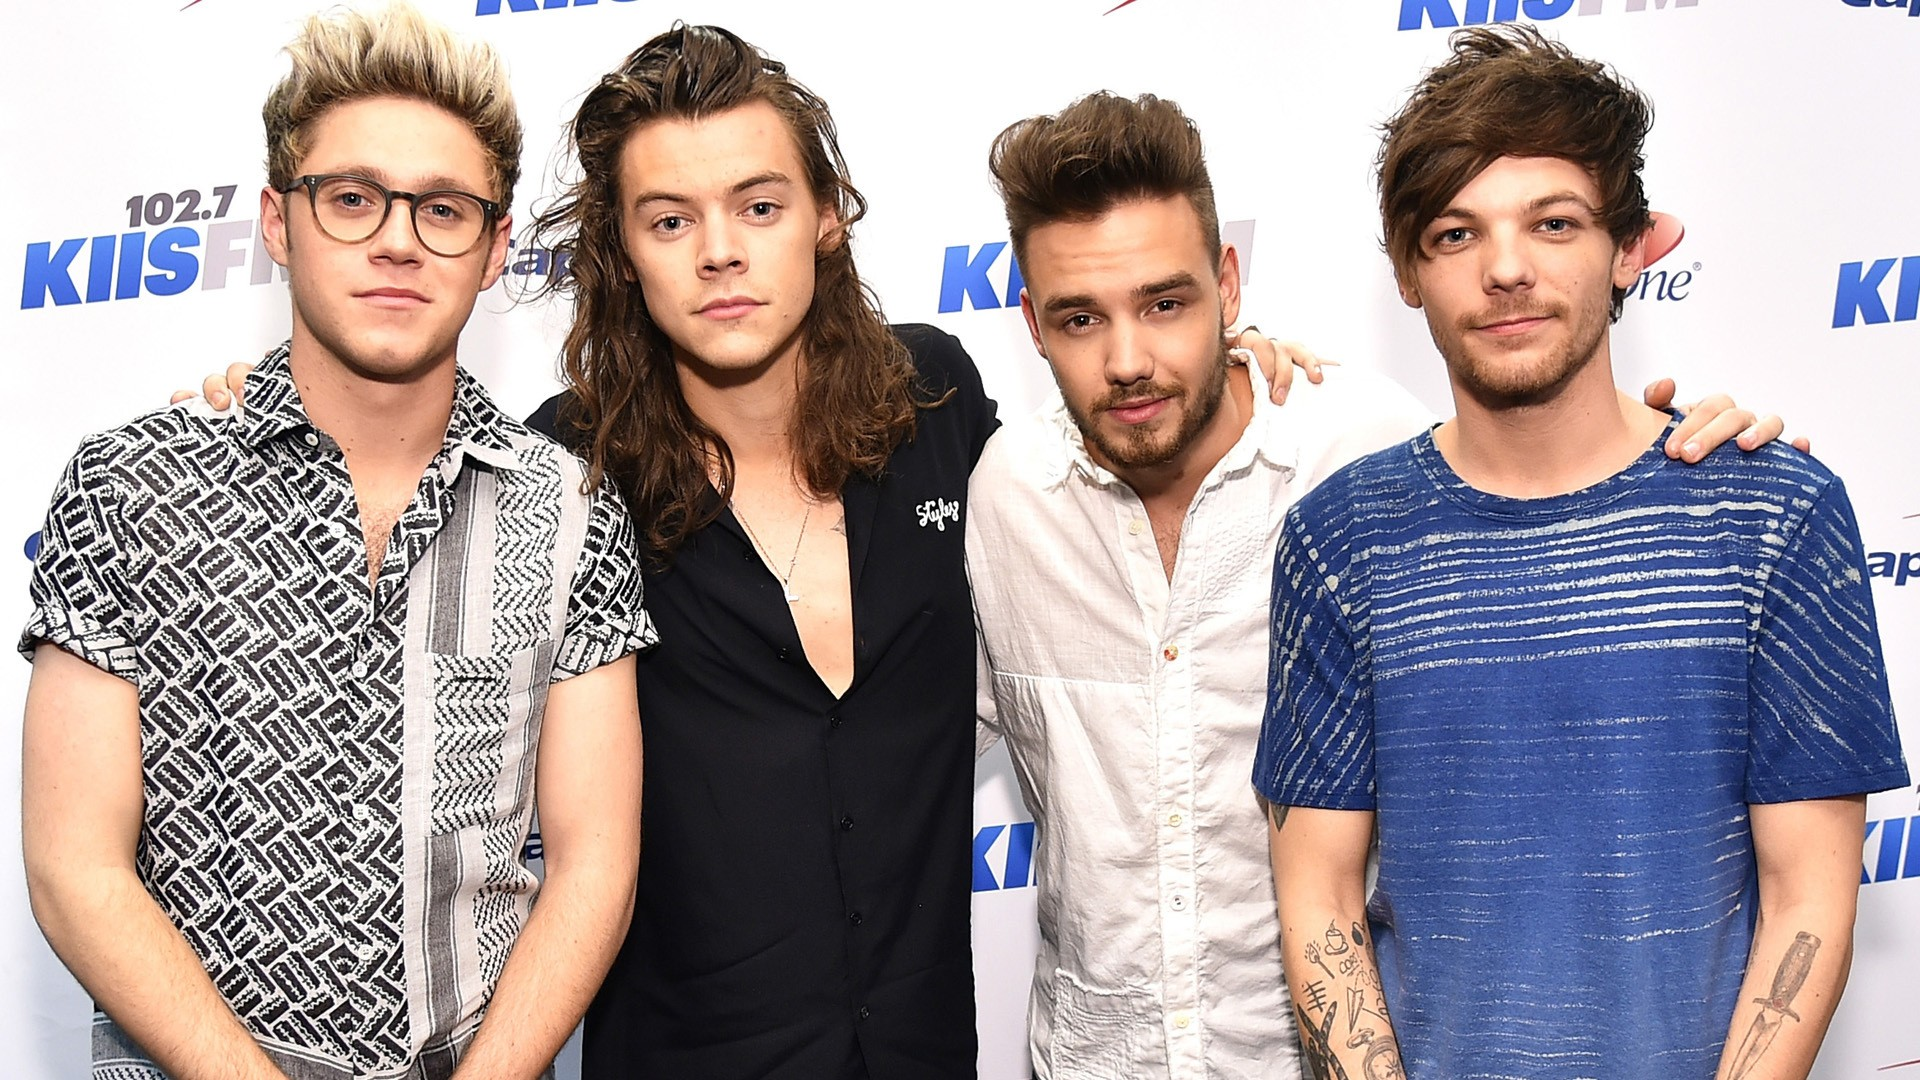 One Direction wallpaper ·① Download free HD wallpapers of ...